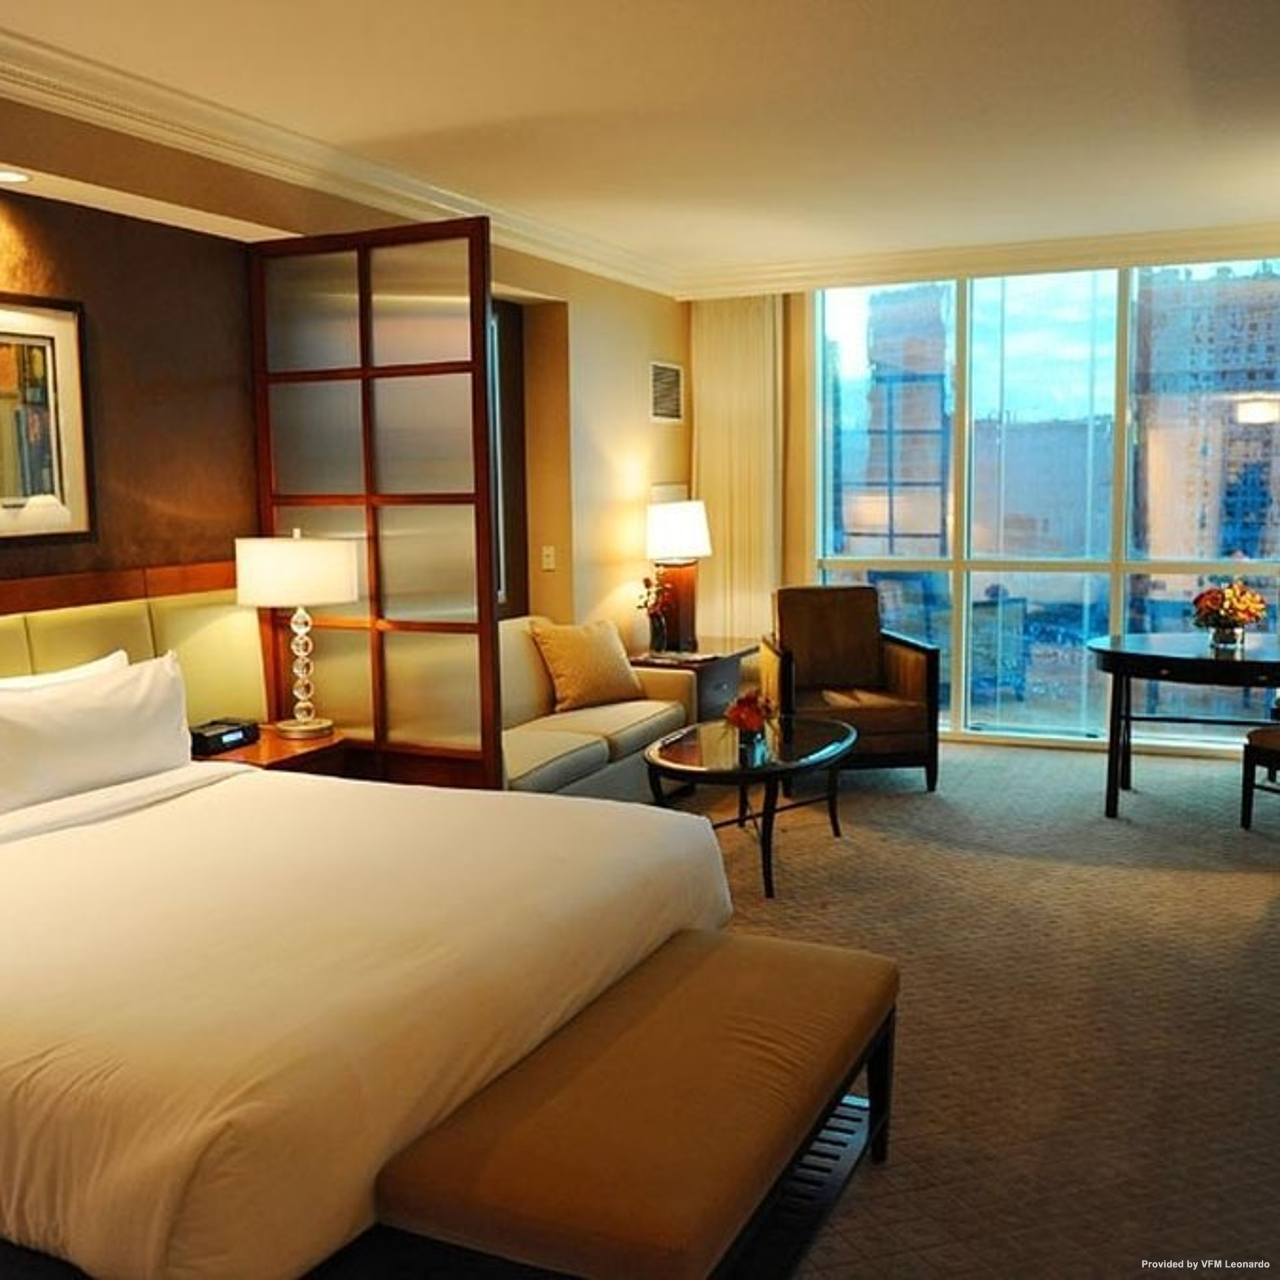 Hotel The Signature At Mgm Grand United States Of America At Hrs With Free Services